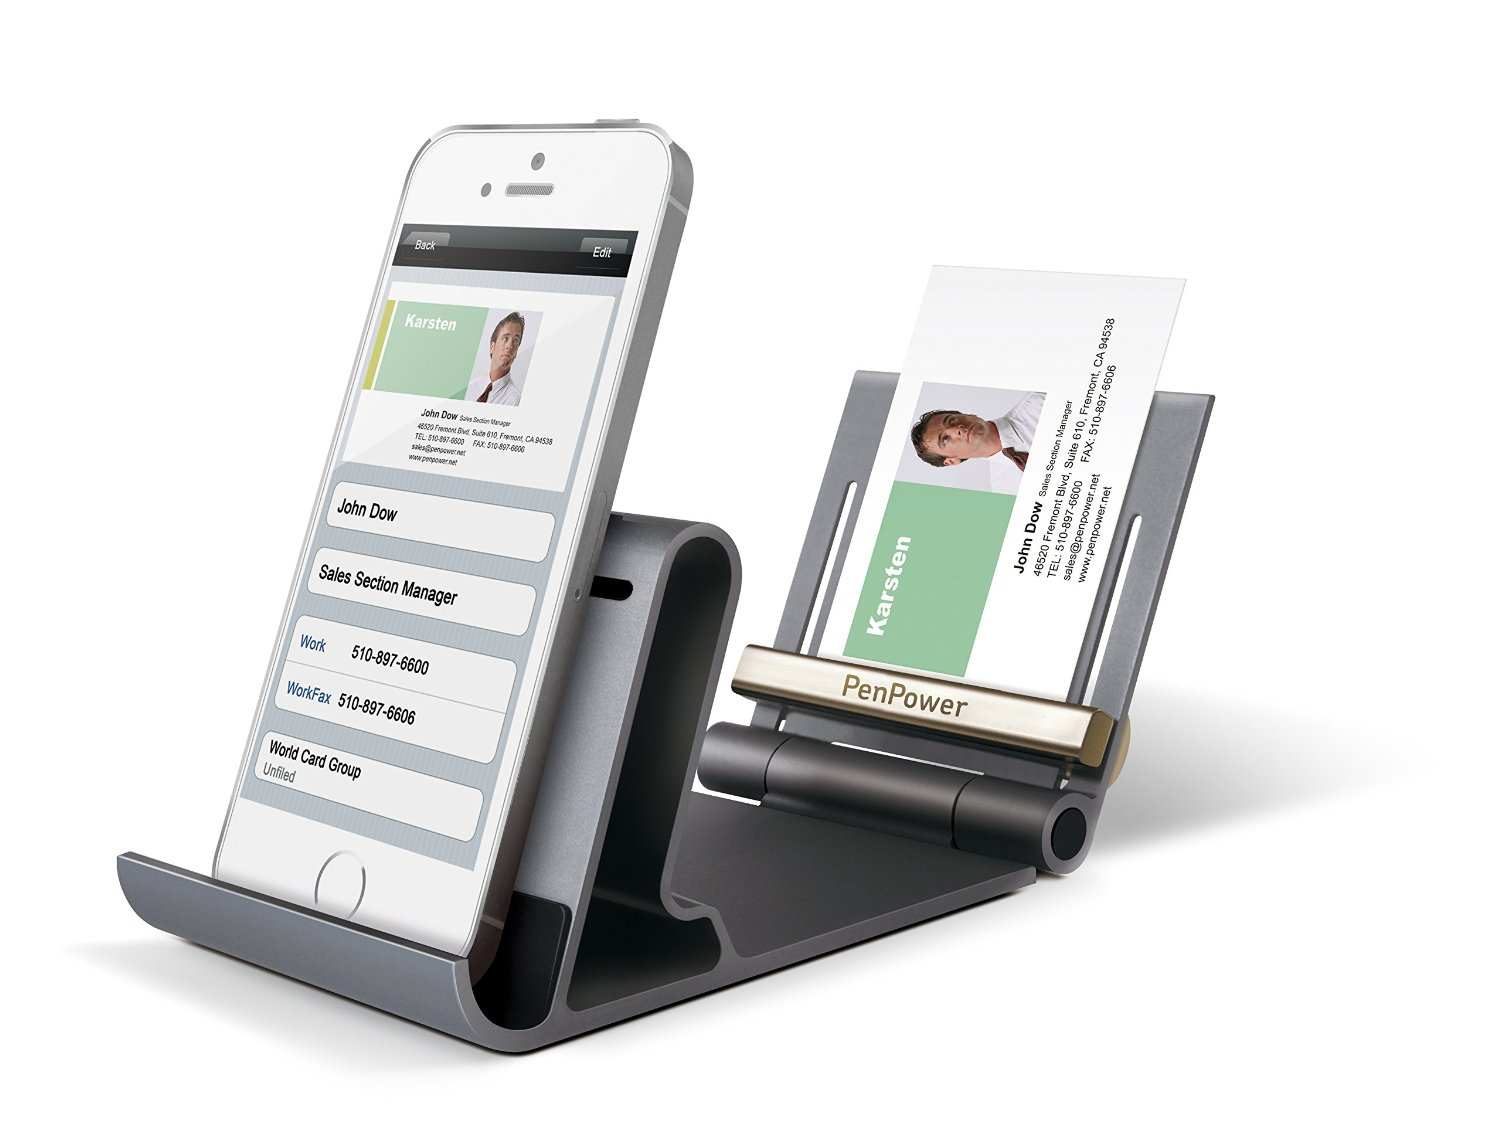 The worldcard mobile phone kit makes scanning business cards even easier reheart Gallery